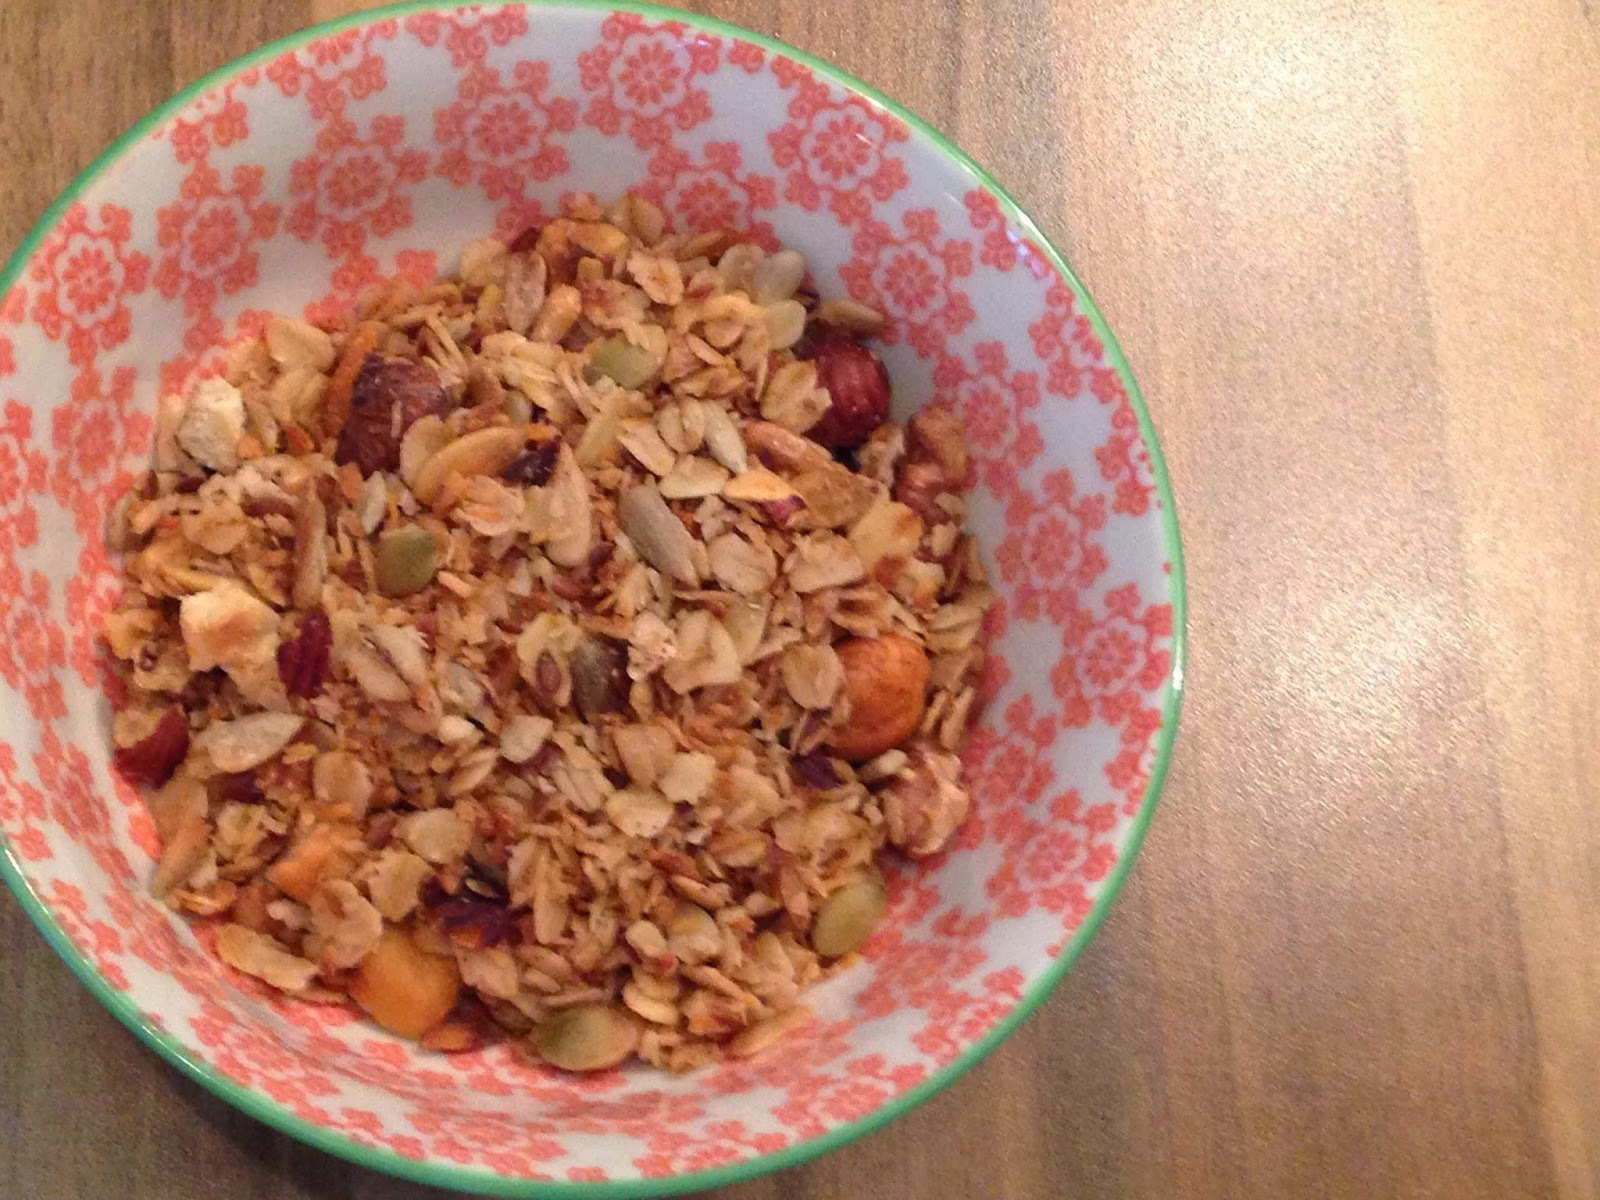 Nutty Coconut Granola - More filling than Weetabix I reckon!